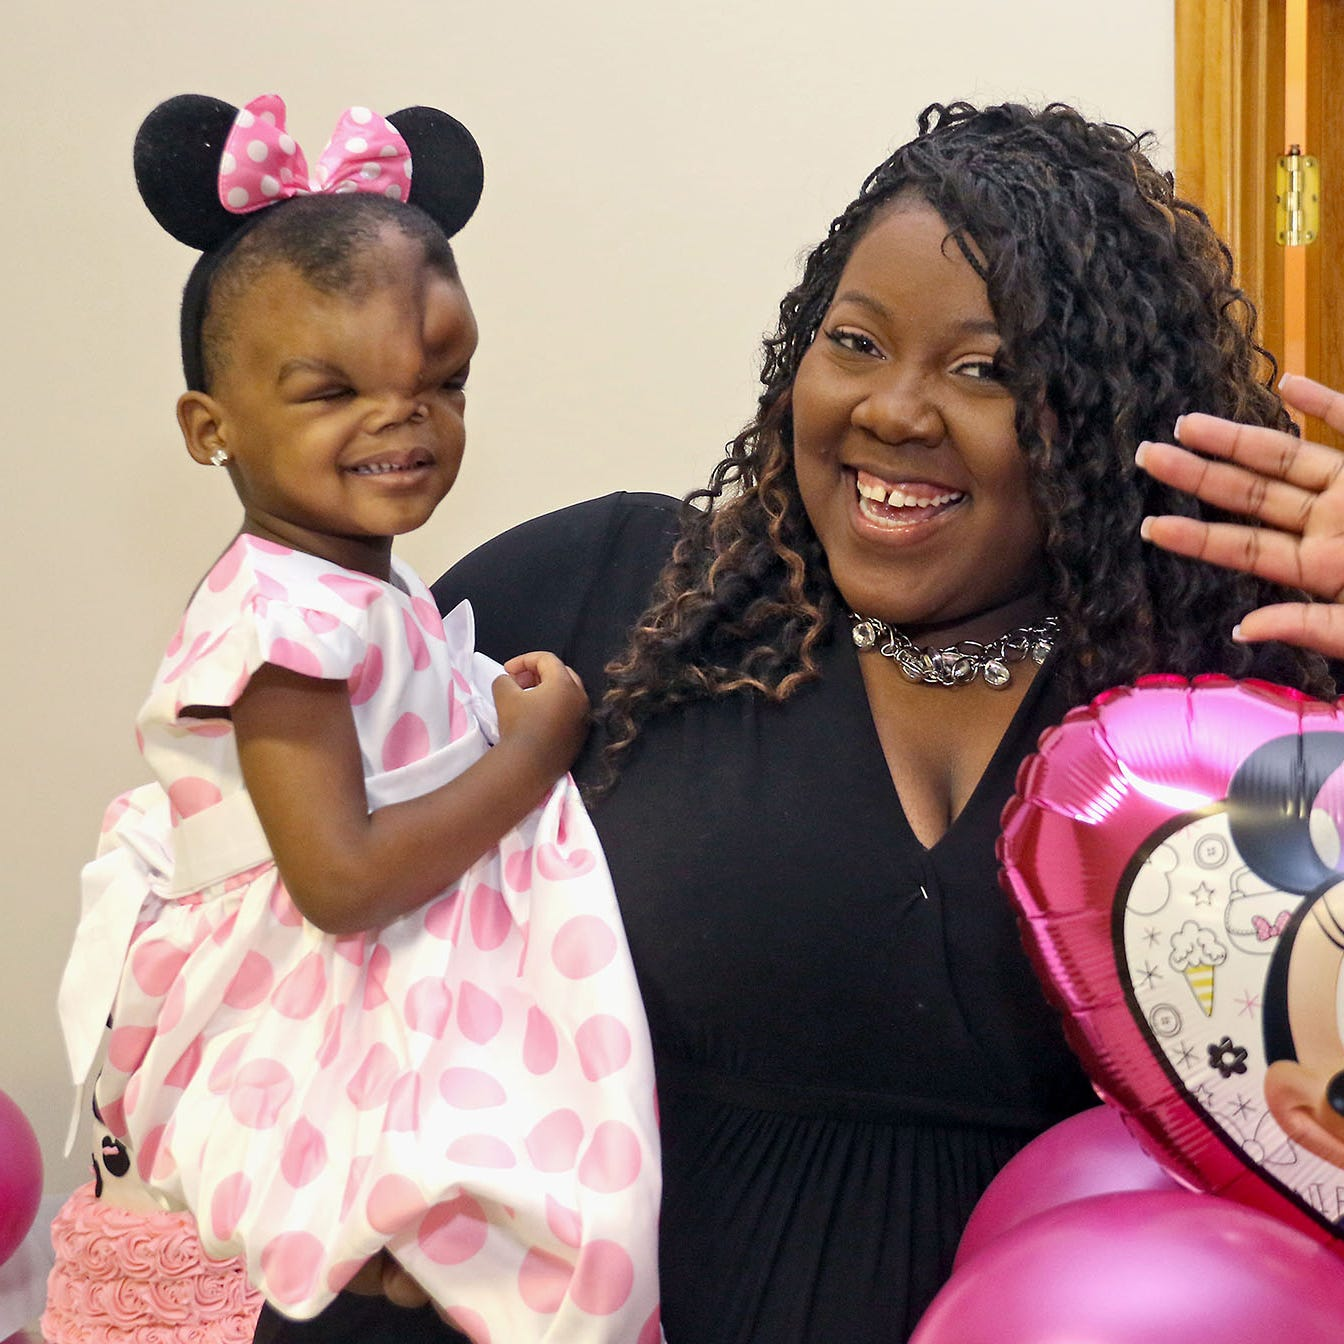 Mississippi toddler thrives after life-changing surgery